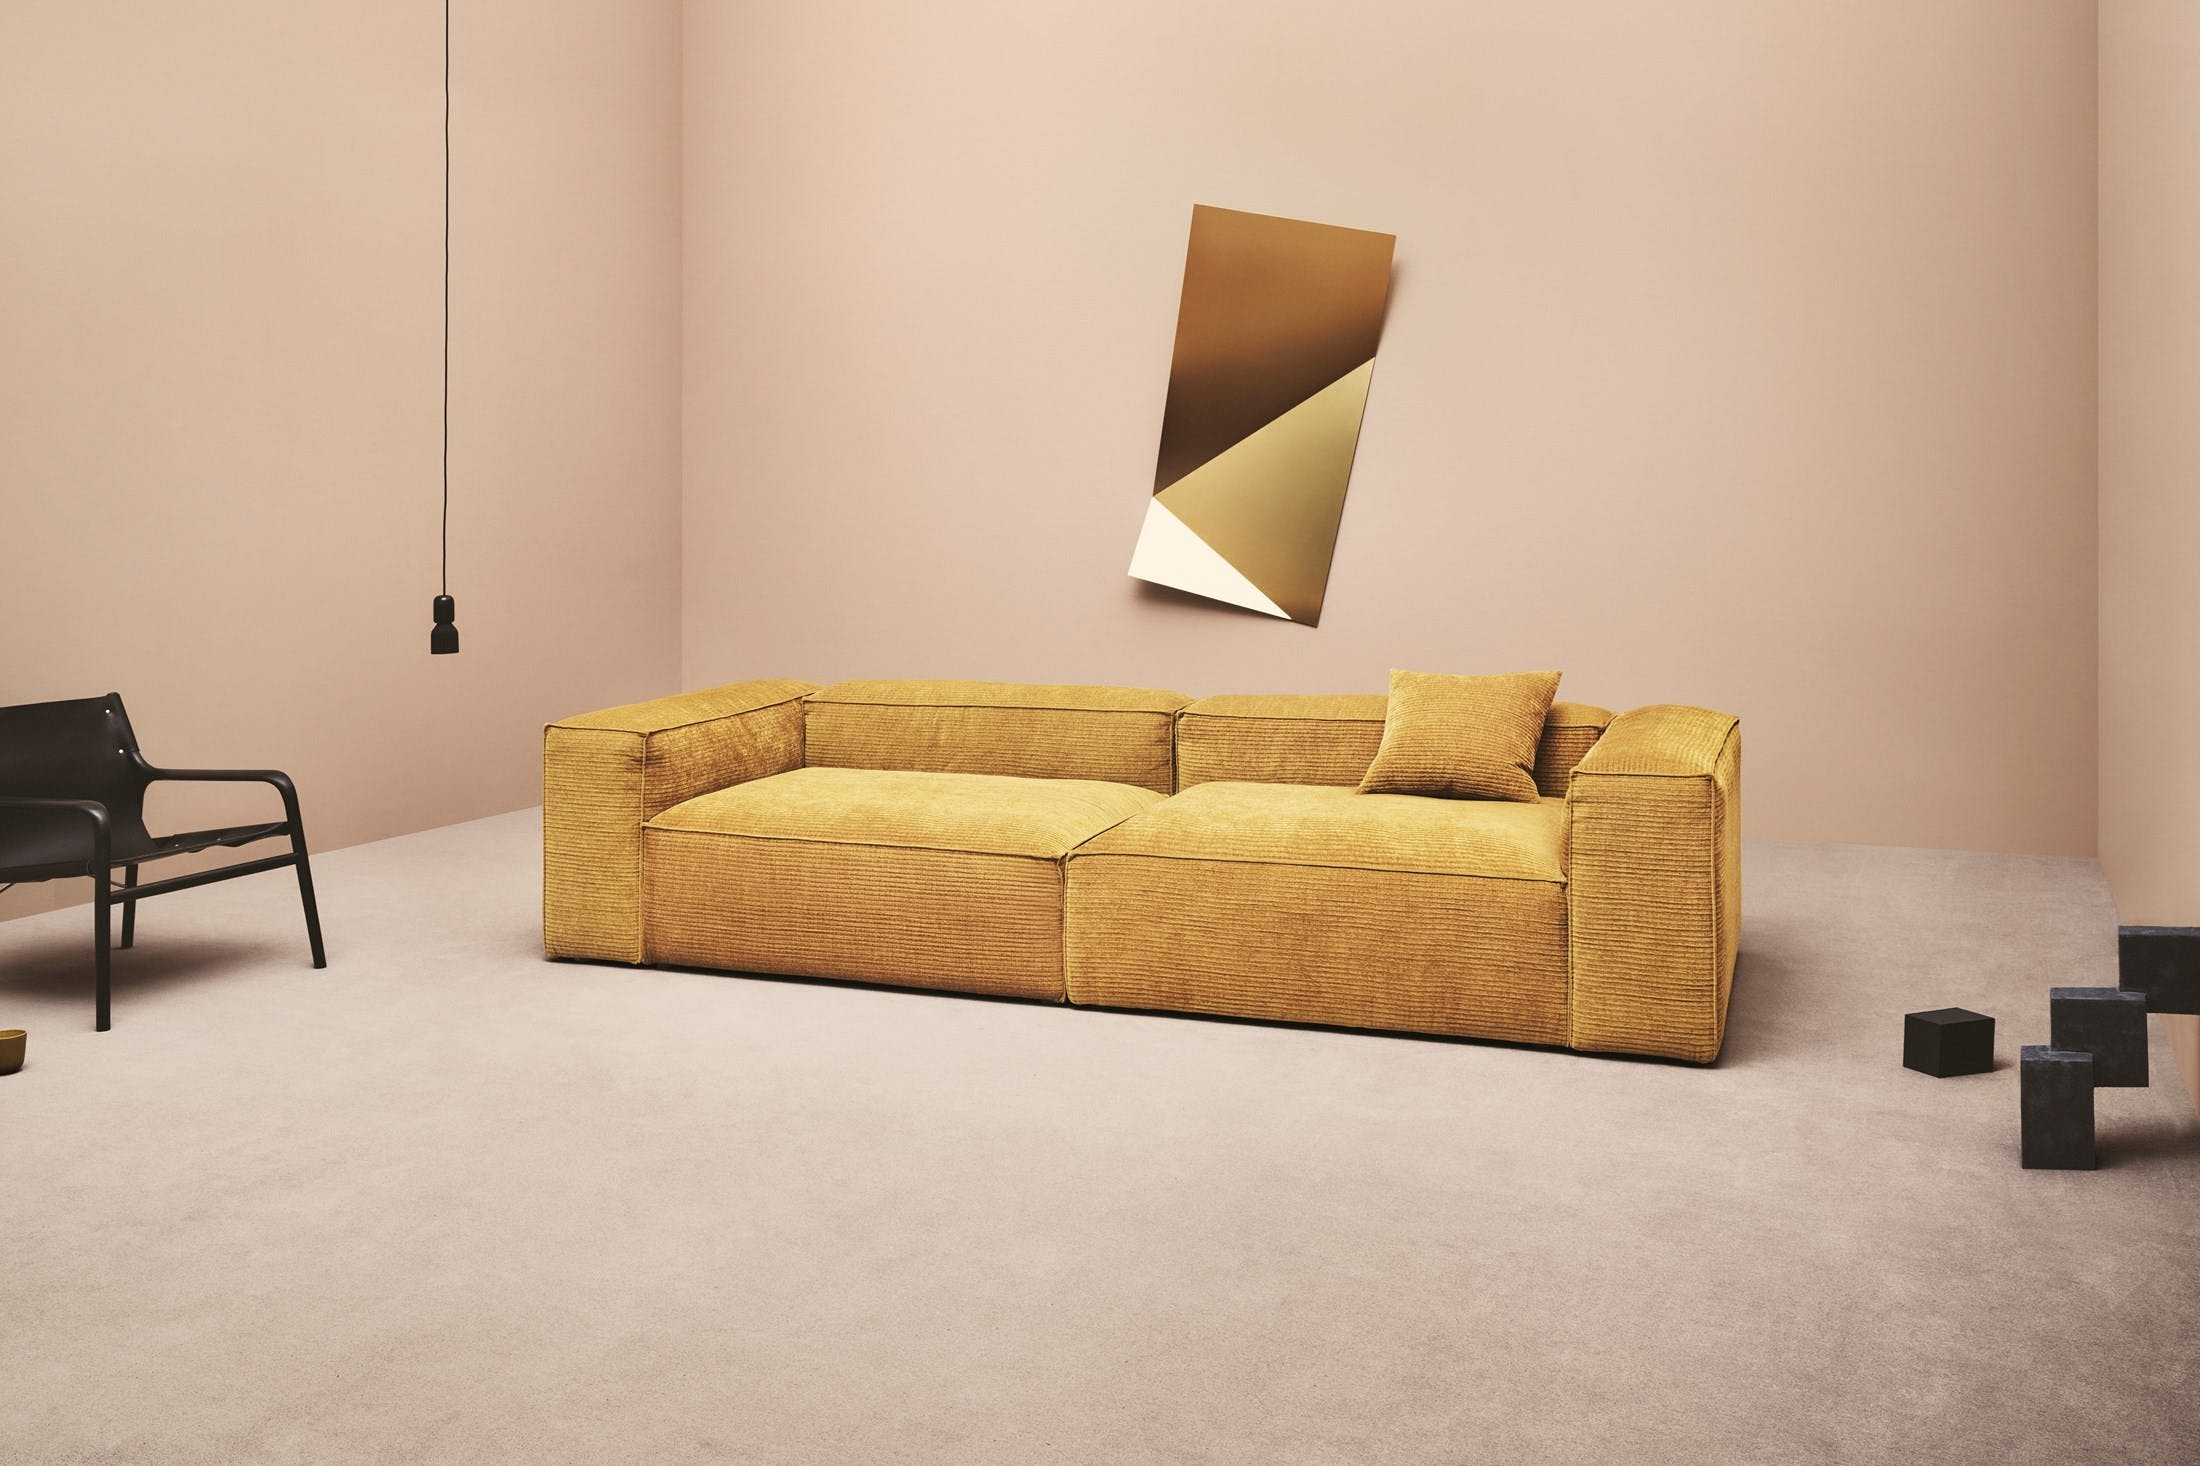 Cosmia-Sofa-by-Bolia-at-Haute-Living